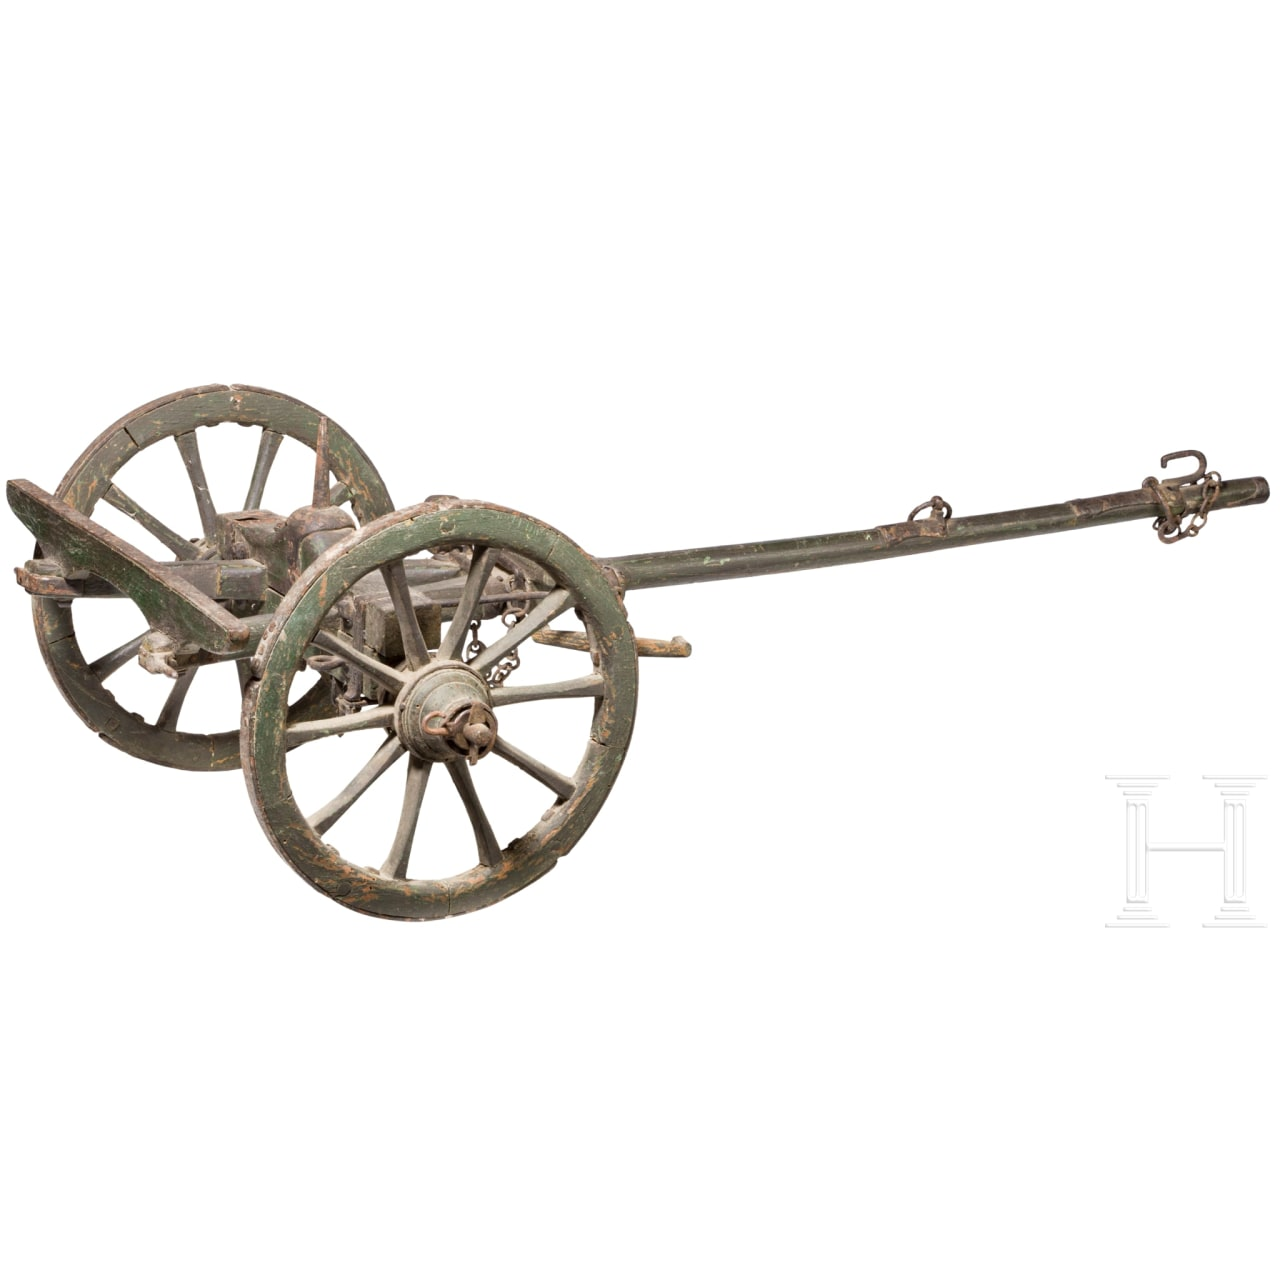 A limber for the model of a French fieldgun, 19th century